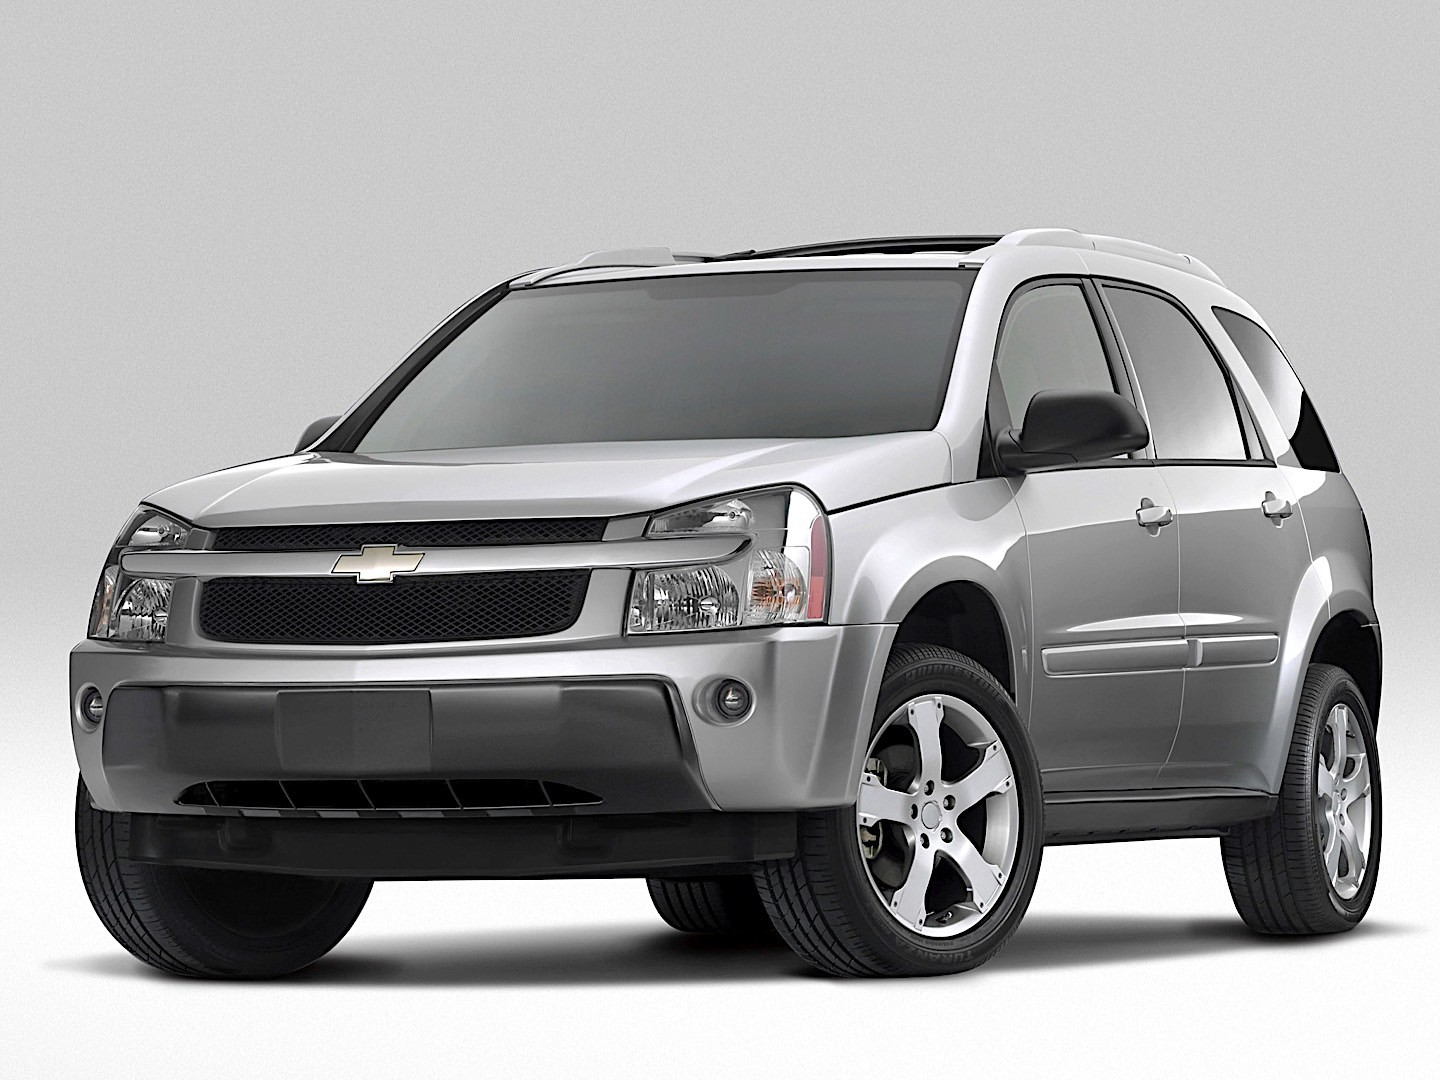 CHEVROLET Equinox specs & photos - 2004, 2005, 2006, 2007, 2008, 2009 - autoevolution